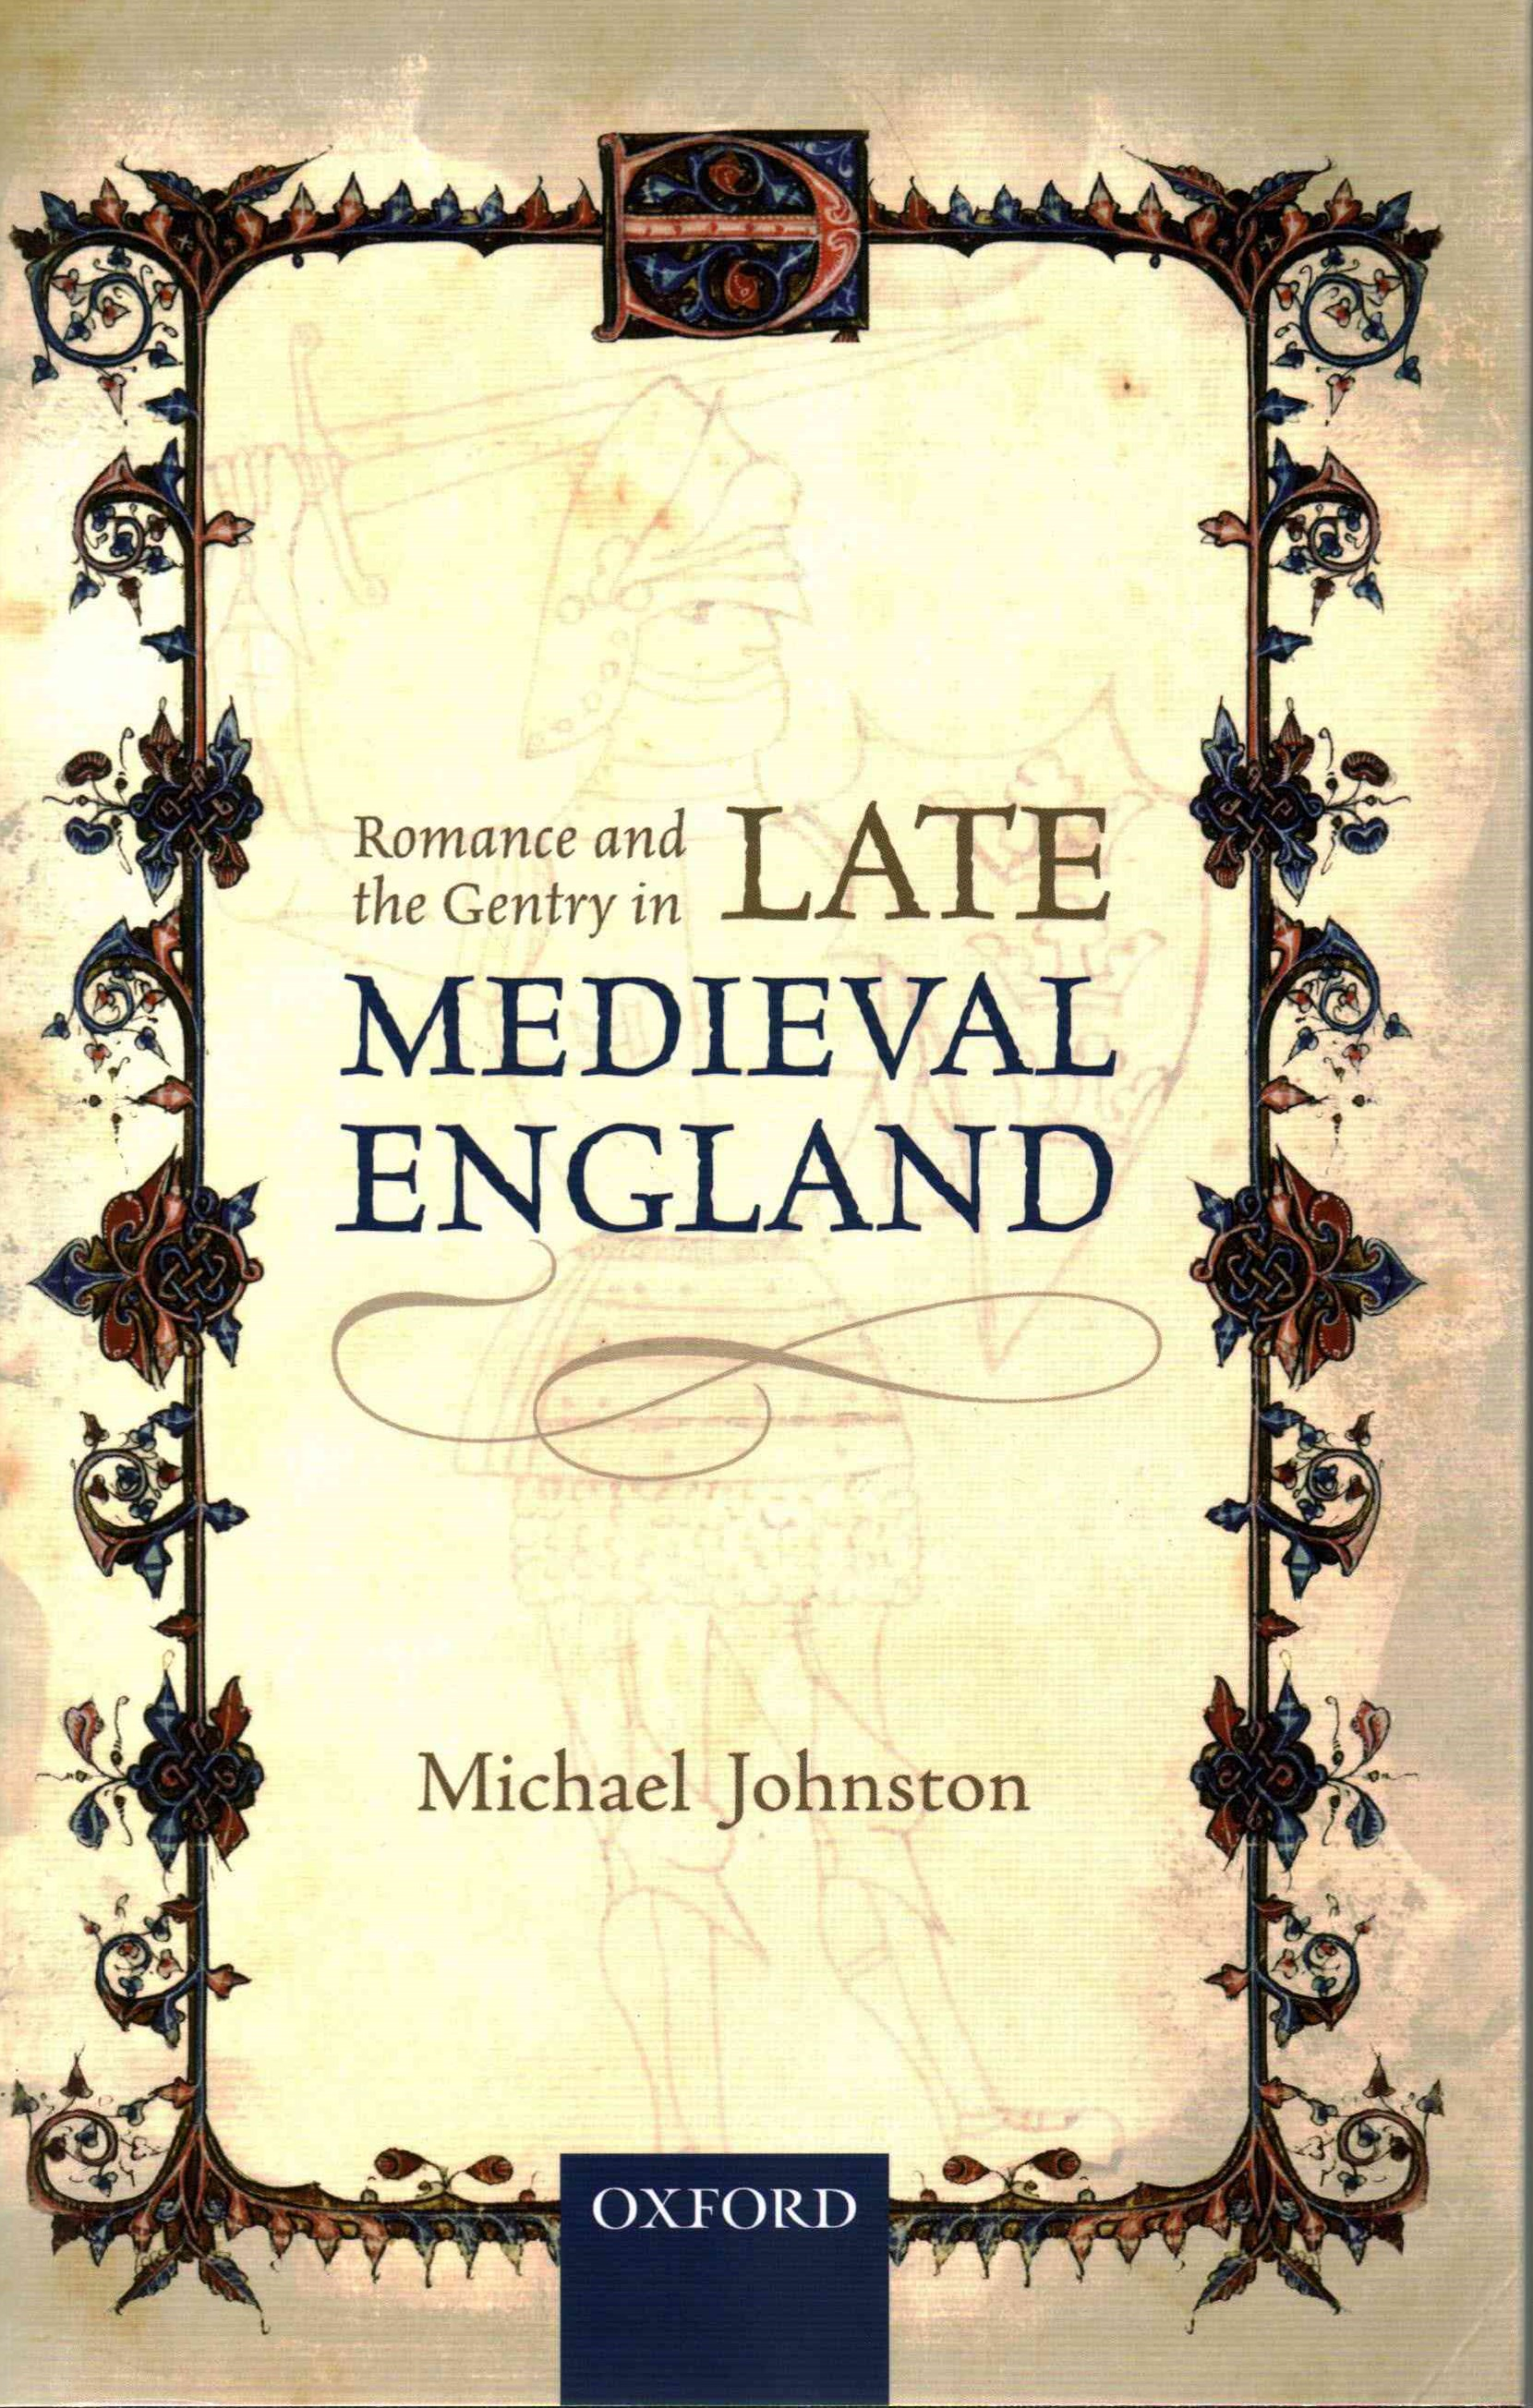 Romance and the Gentry in Late Medieval England